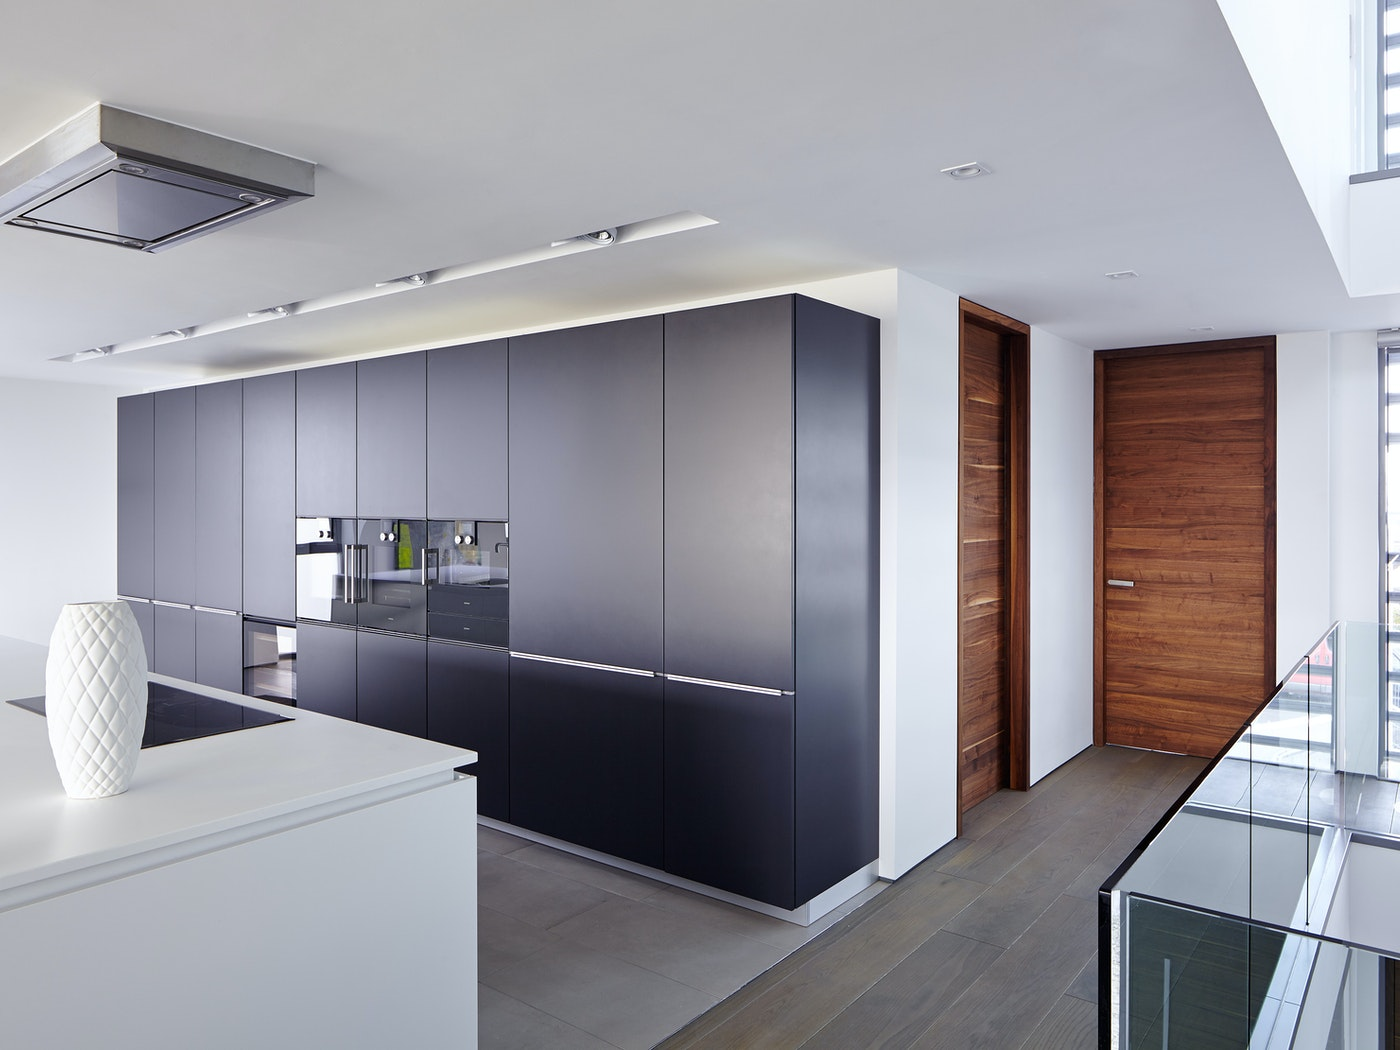 The deeper colour of the american black walnut wood works really well with greys